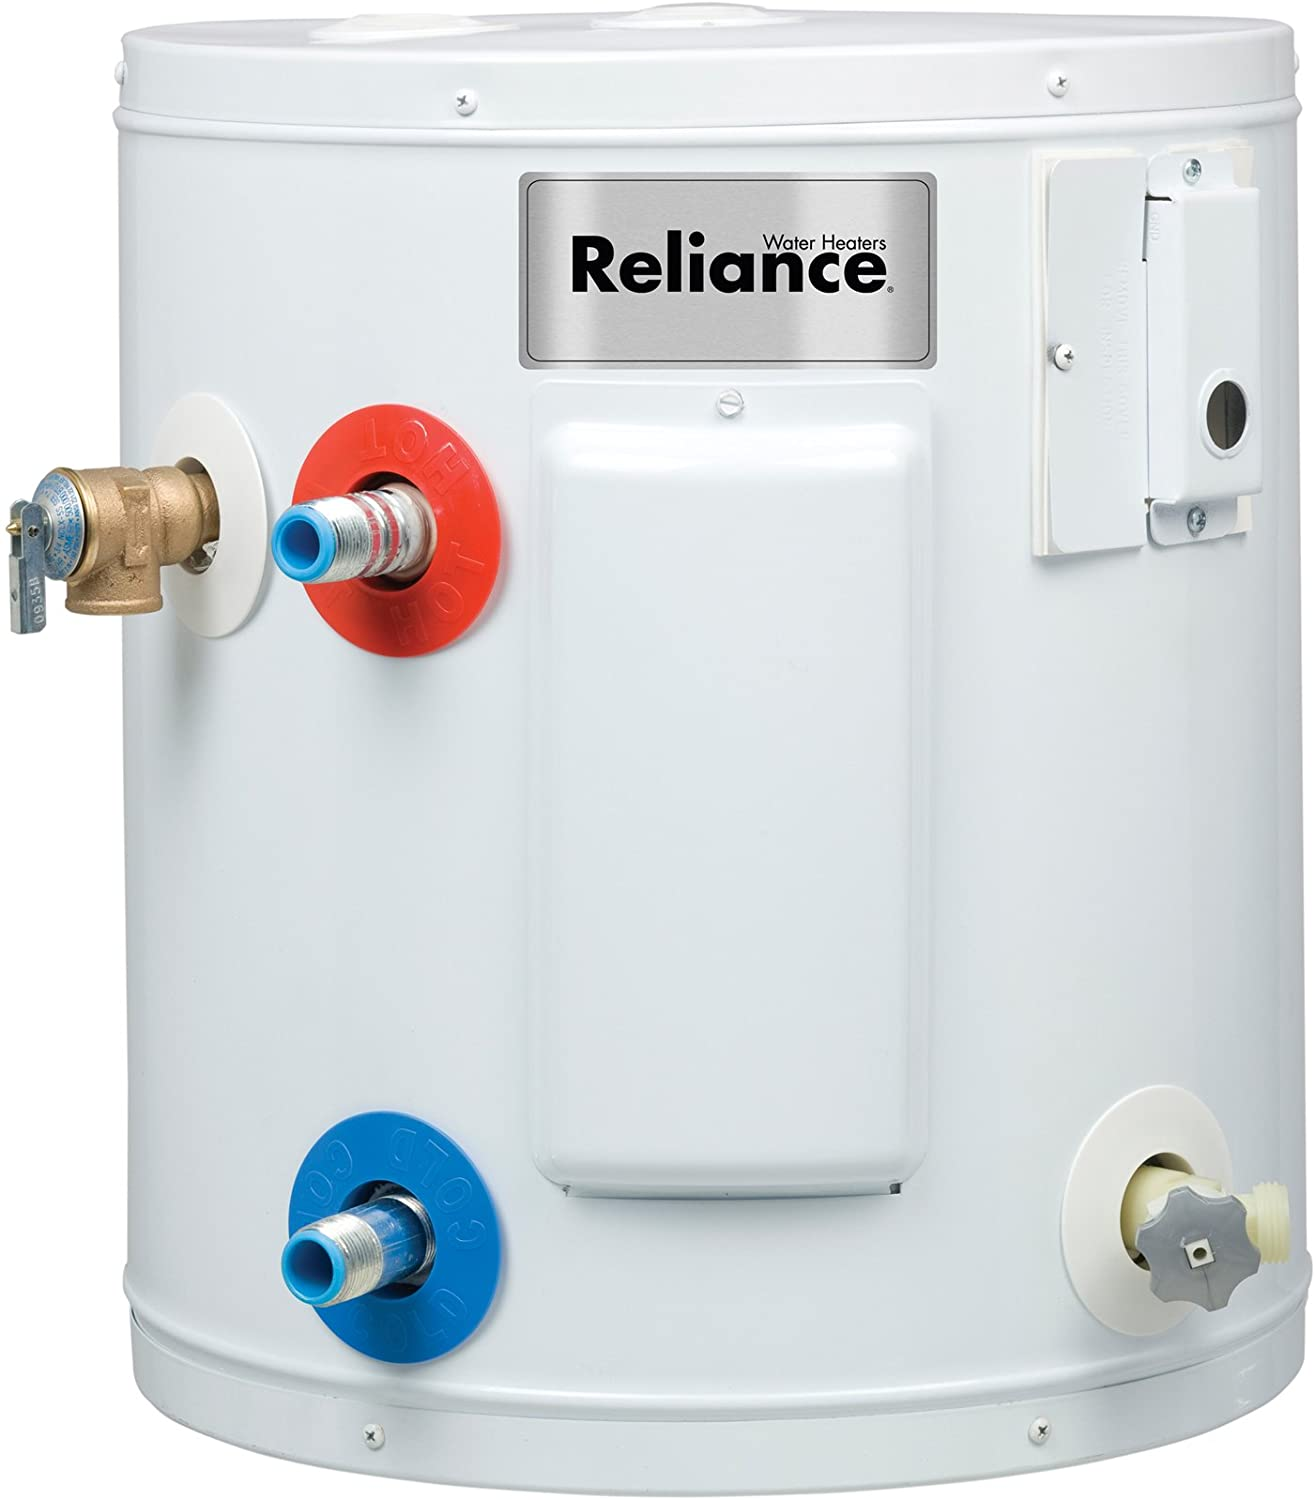 Reliance 6 6 Soms K 6 Gallon Compact Electric Water Heater Water Heaters Amazon Canada